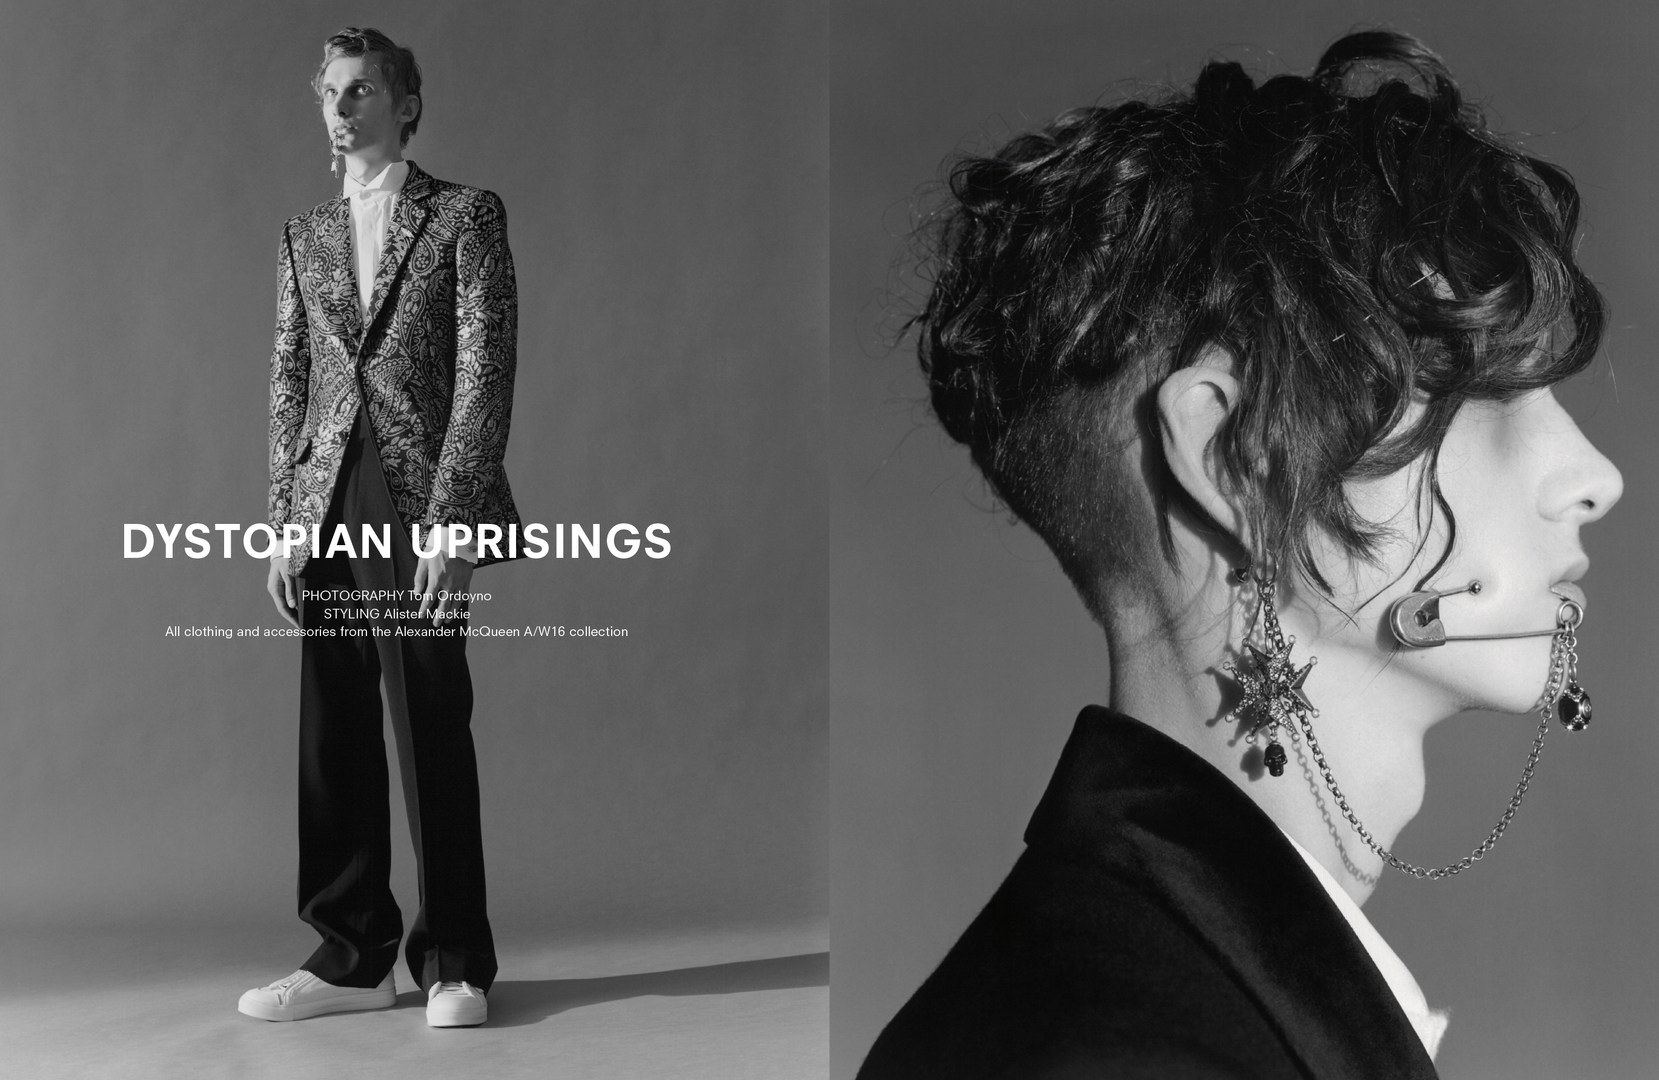 """Dystopian Uprising"" Photographer: Tom Ordoyno, Stylist: Alister Mackie for AnOther Man Spring/Summer 2016. All clothing and accessories by Alexander McQueen F/W 2015-16 Collection."